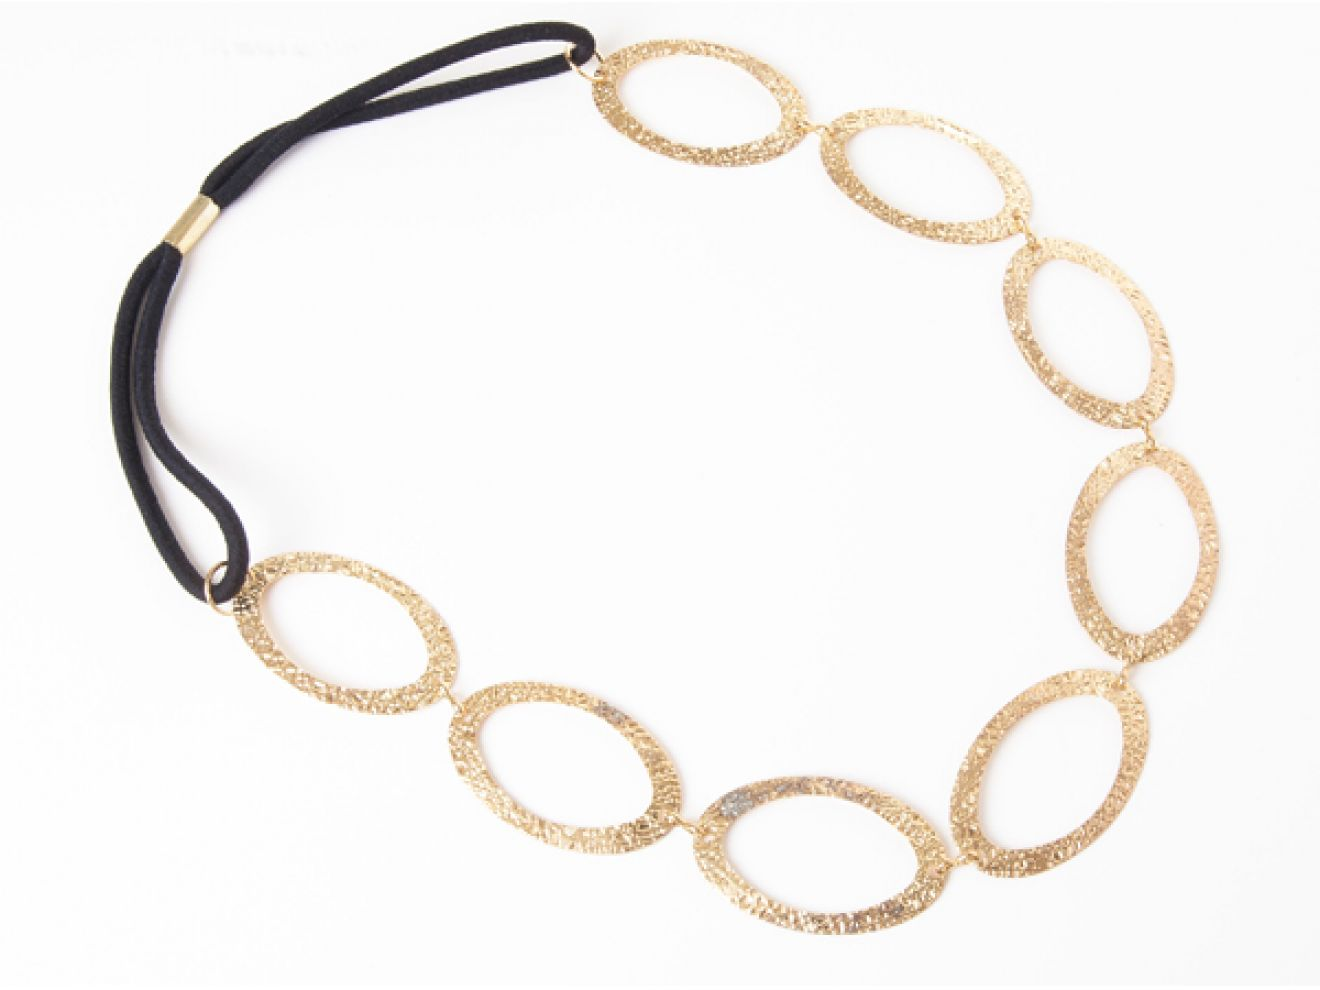 Ficcare Haarband: Mesh - Large Oval - Gold